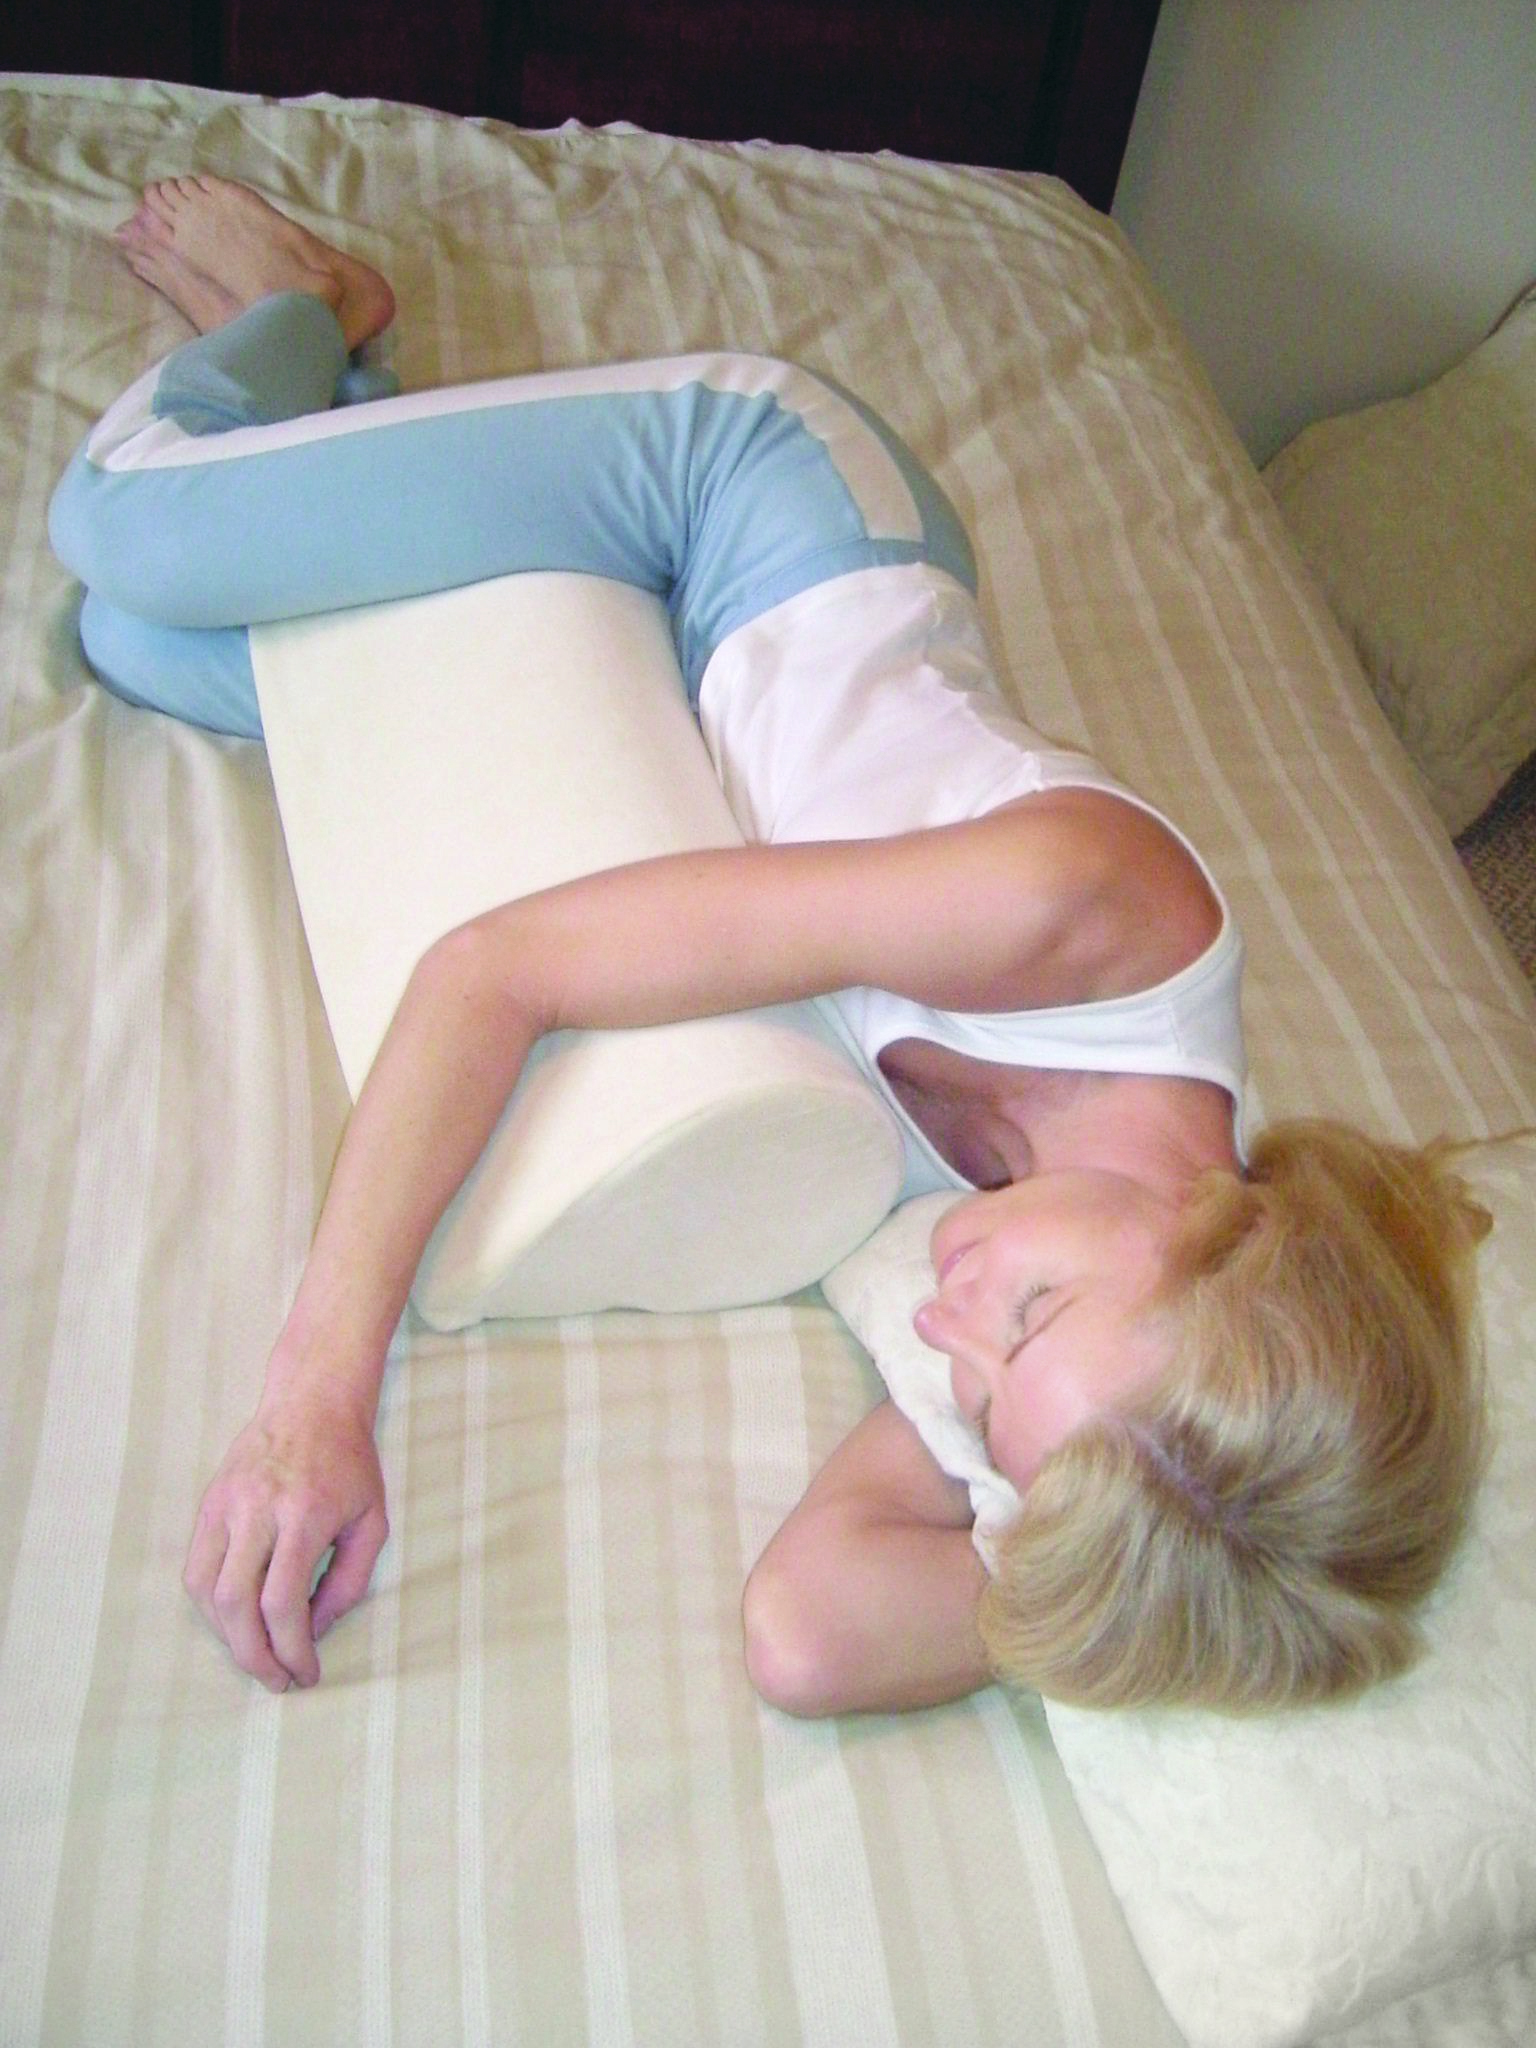 pain sleeper bedgear pillow neck for sleepers best mattress side position stomach and